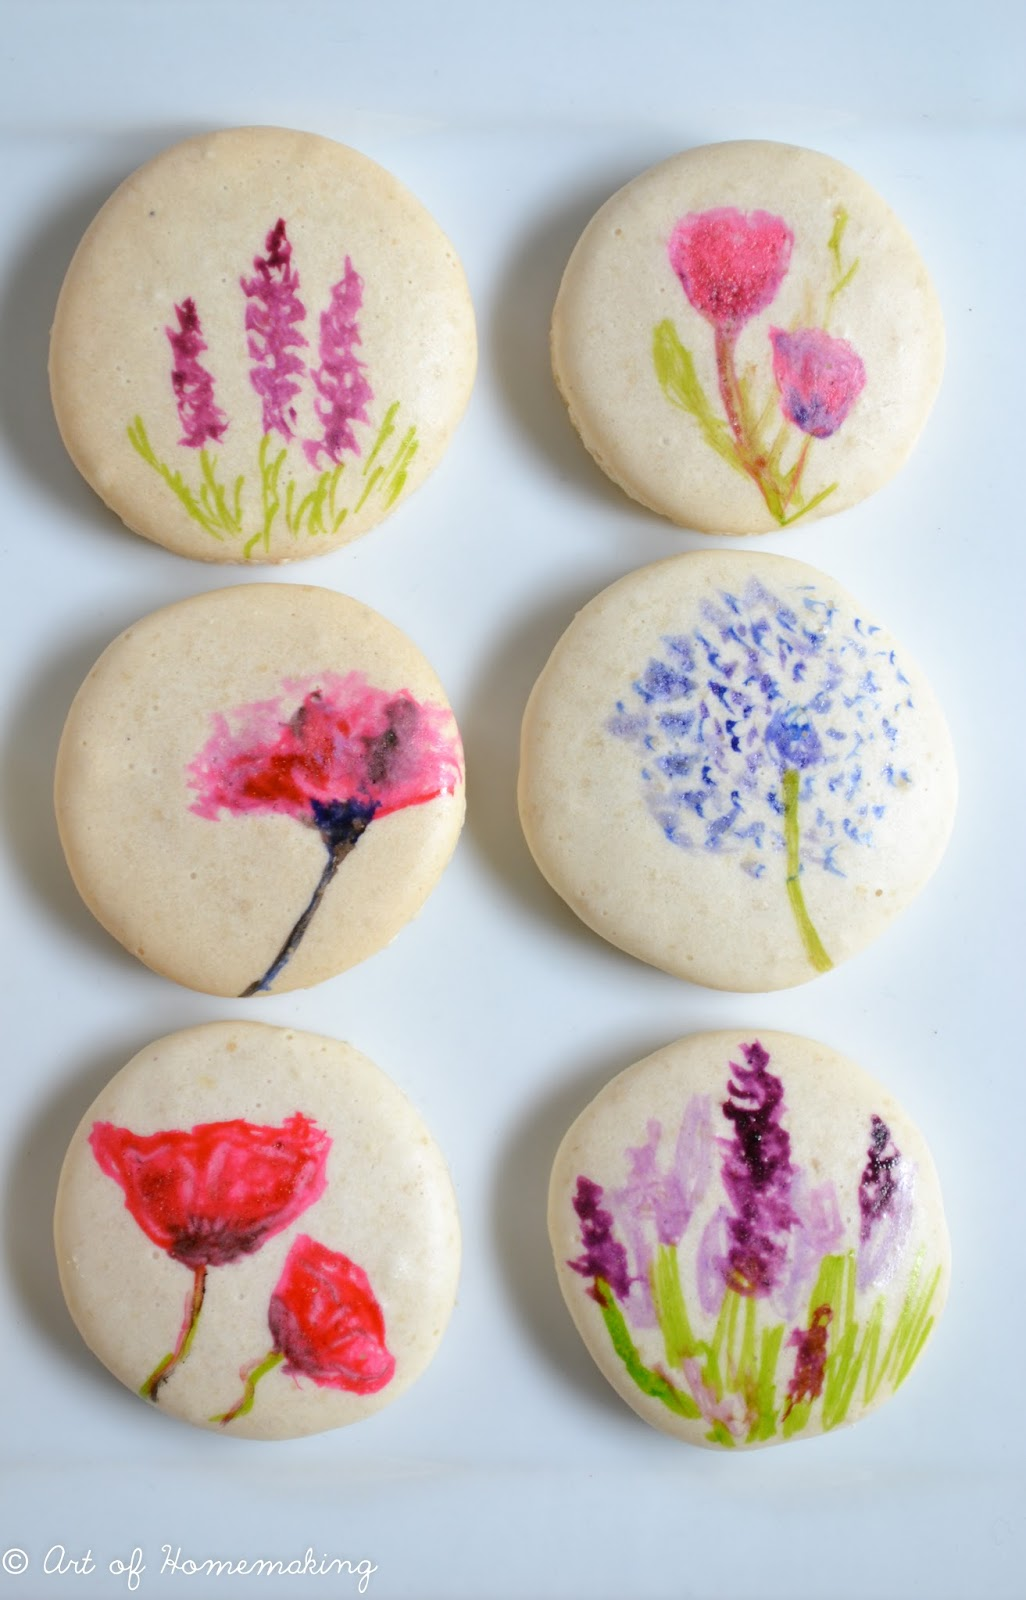 What To Use To Paint On Macarons